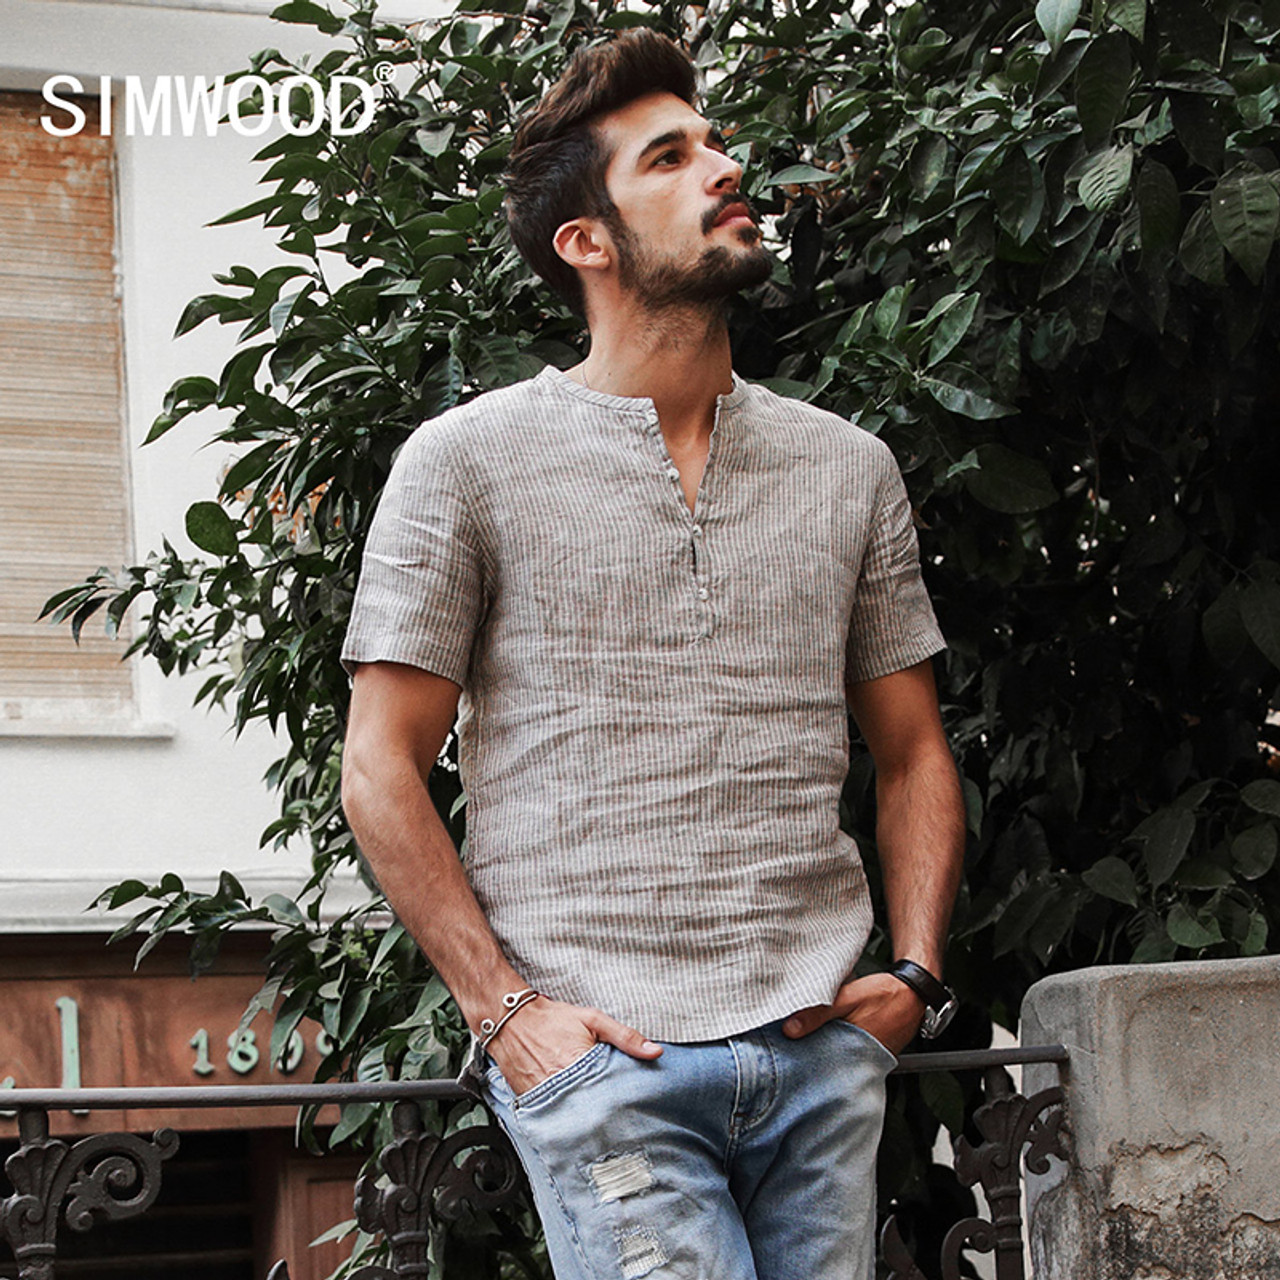 caebd21e11c SIMWOOD 2018 Summer Shirts Men 100% Pure Linen Shorts Sleeve Striped Slim  Fit Henry Collar ...